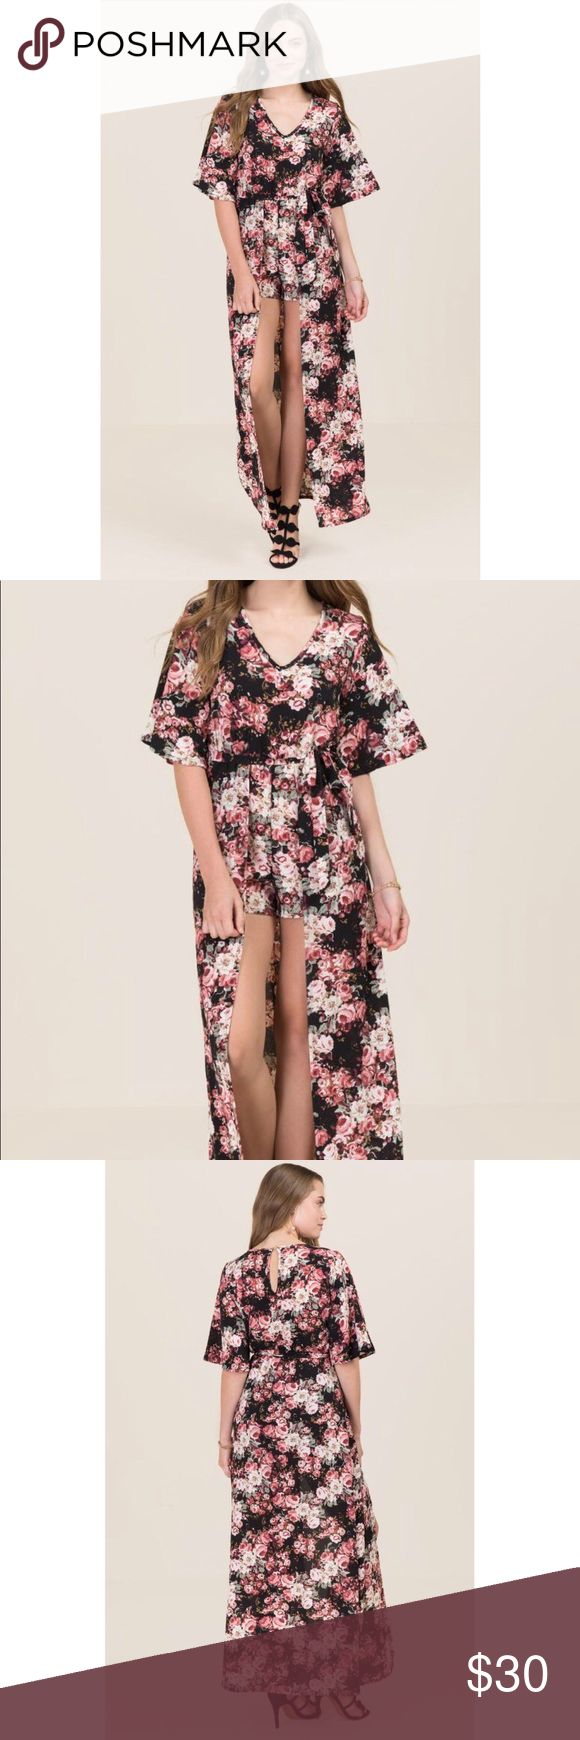 """gorgeous floral maxi romper Purchased from Francesca's August 2017, style name is Rowen. $44. Size small, measurements are included from the website. I wore it once on vacation (pictured blonde w/ wine & horses) and since I had some photos taken in it am selling it. gently washed and flat dried. This is a maxi dress with built in shorts, so like a romper w/ a maxi skirt. It has an tie for the waist. SUPER cute & versatile. 57"""" length from shoulder to hem • 34"""" bust • 28"""" waist • 5'9"""" model…"""